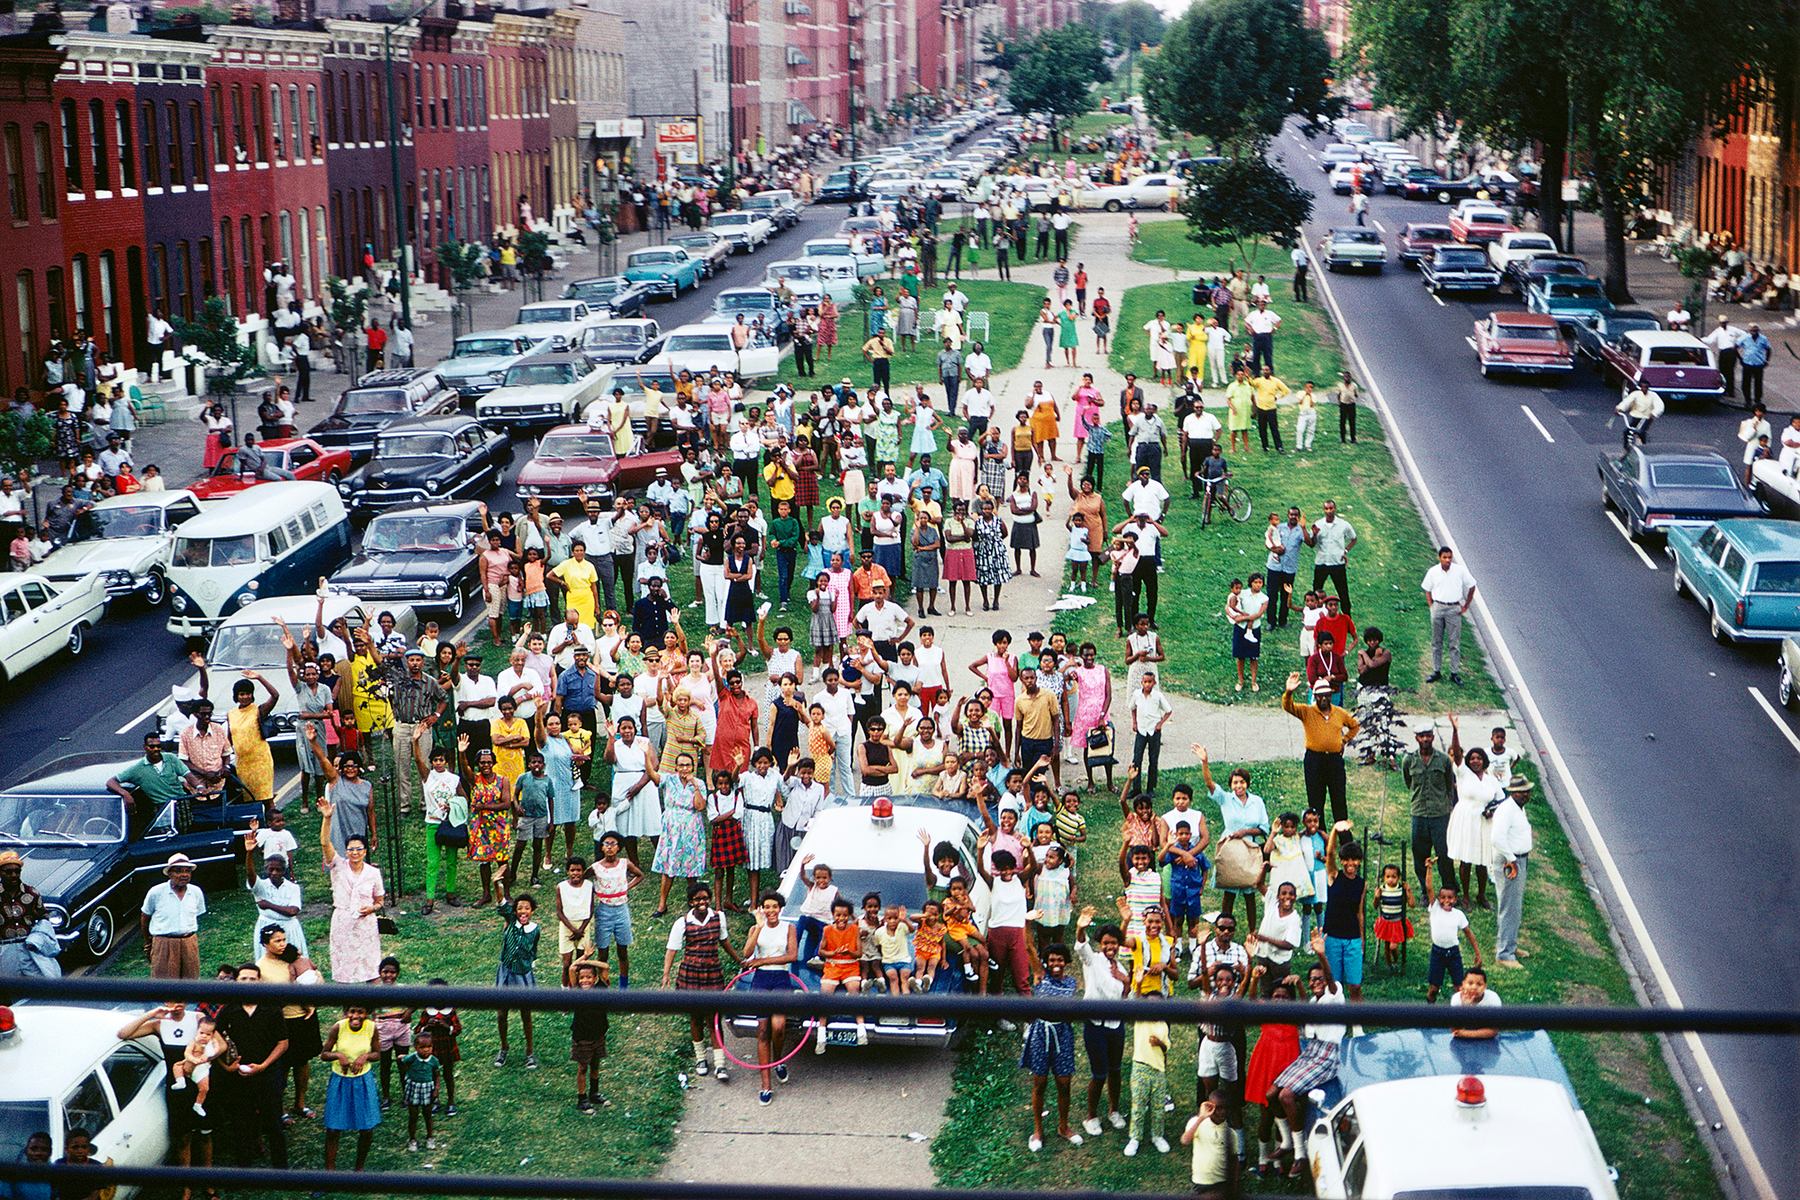 A large group of people standing on a grassy median in a city waving toward the camera